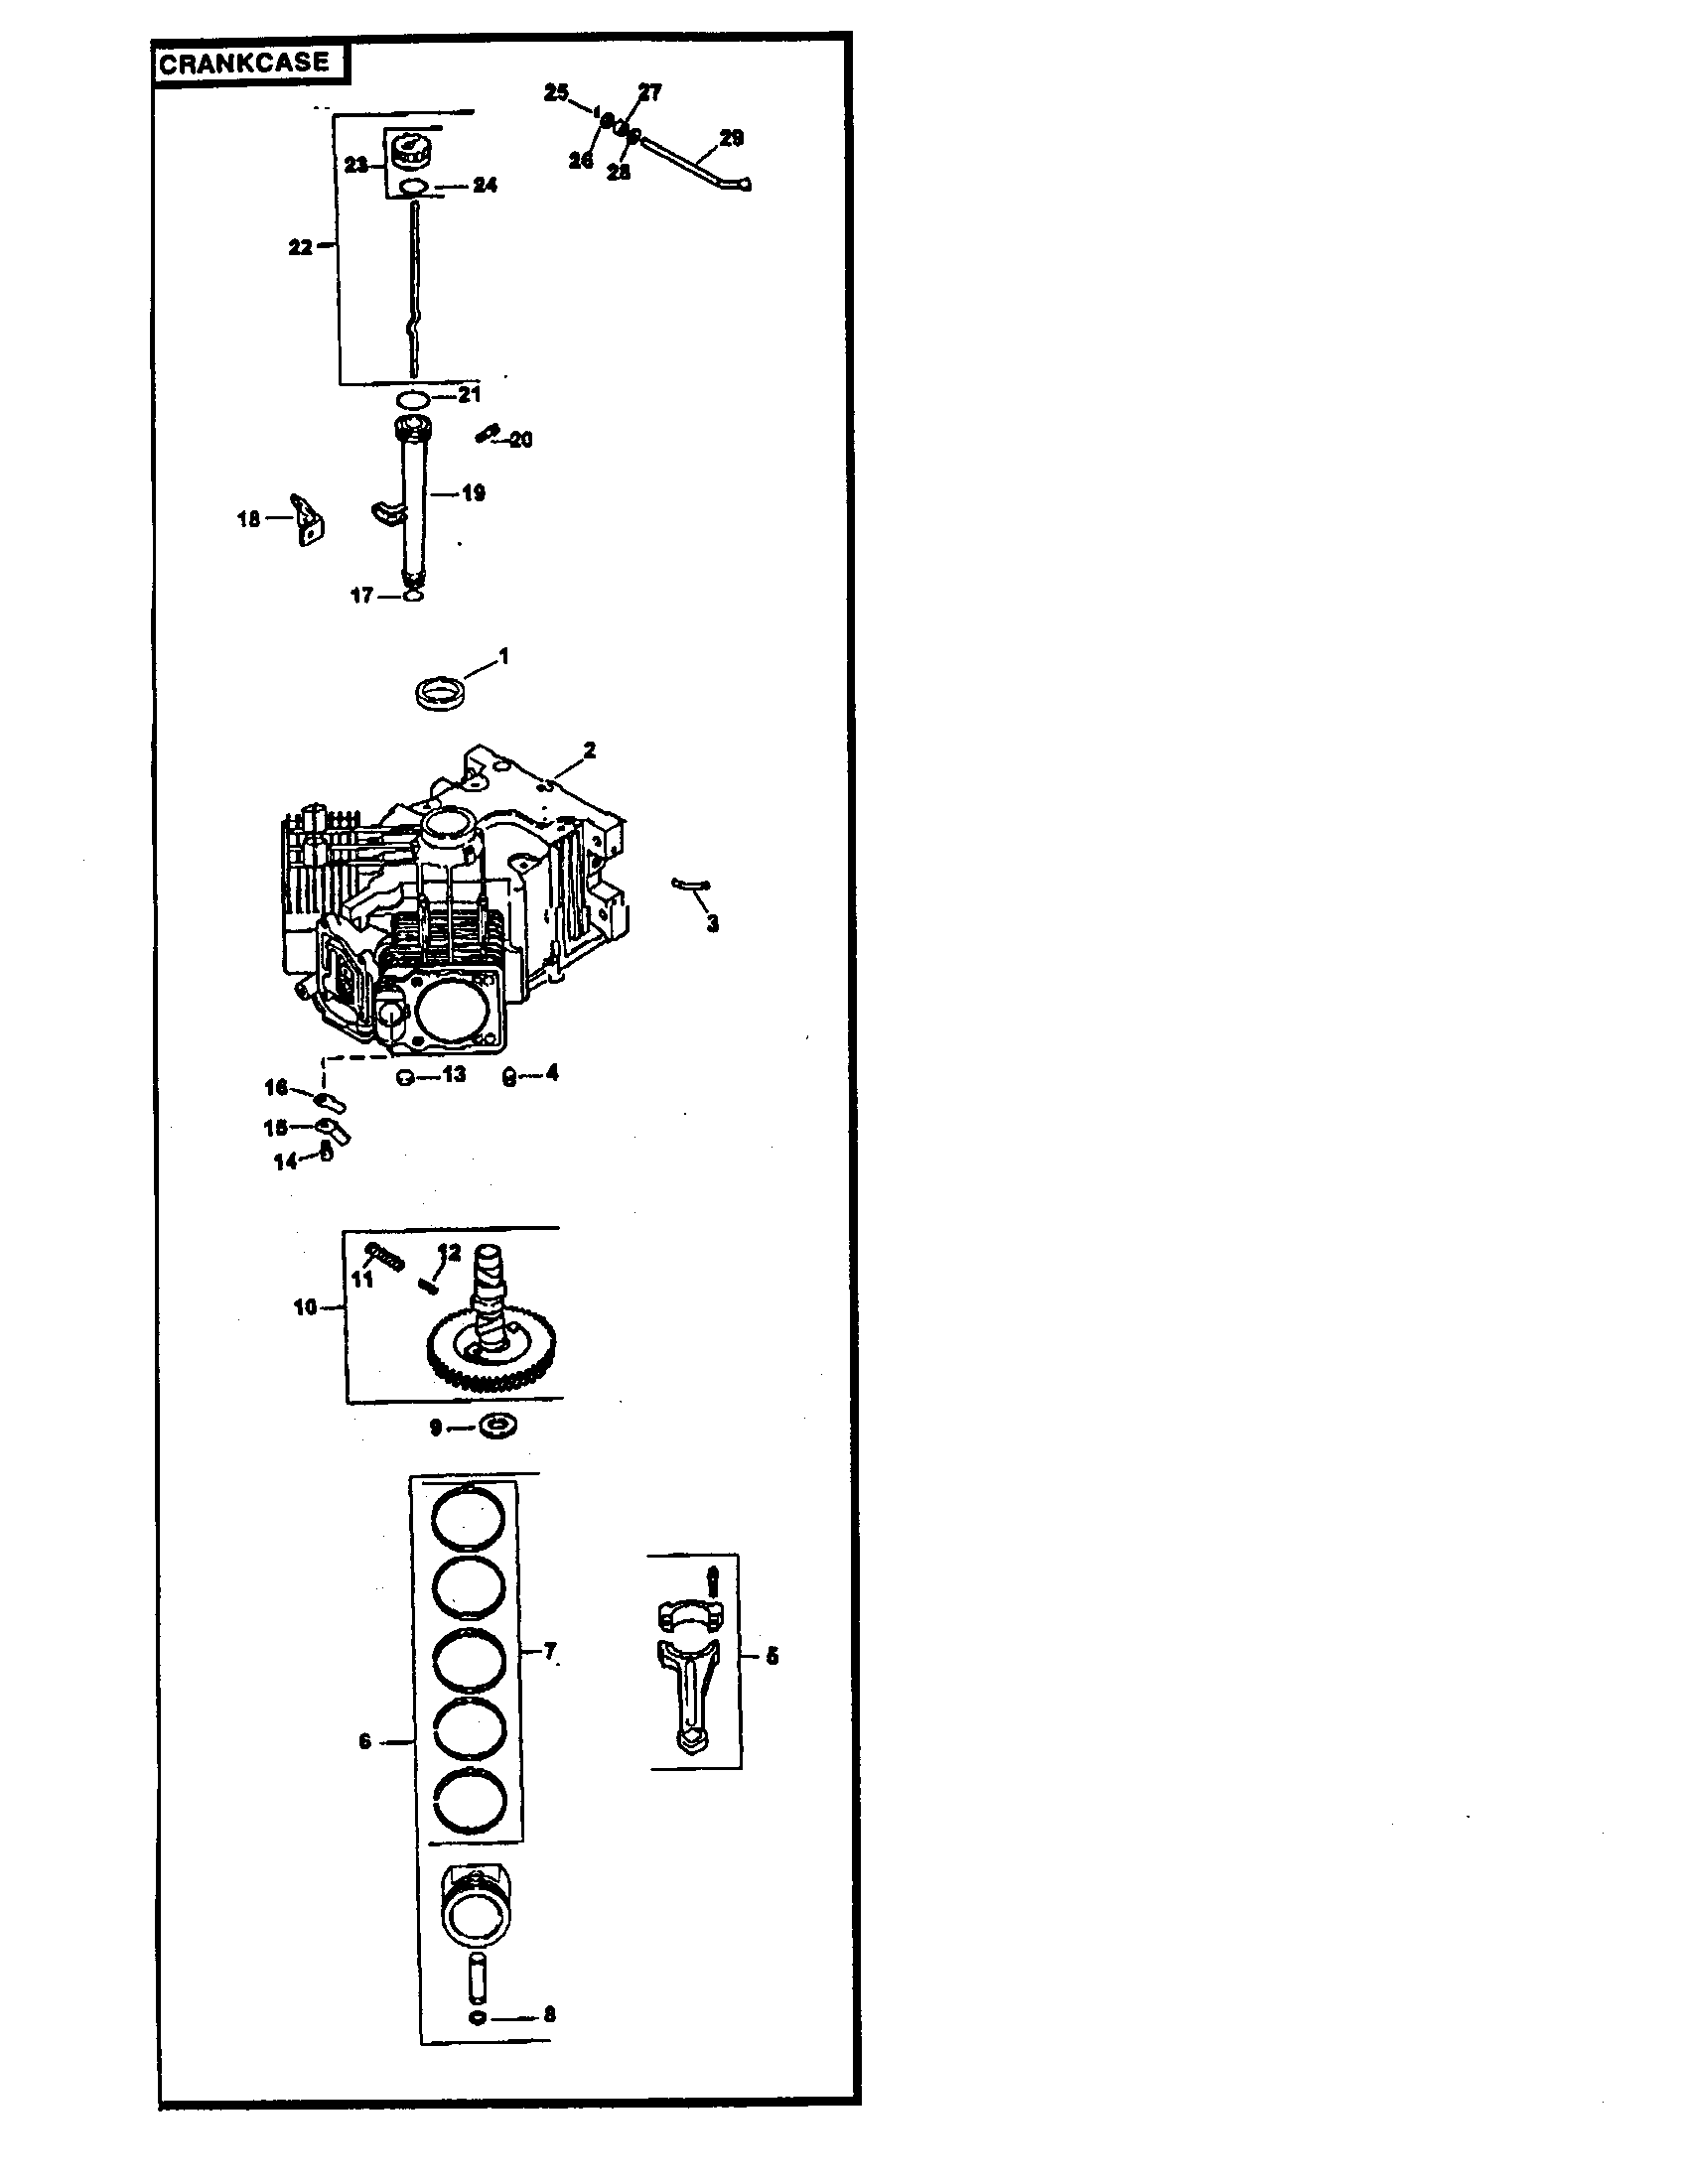 Kohler model CV22S-75534 engine genuine parts